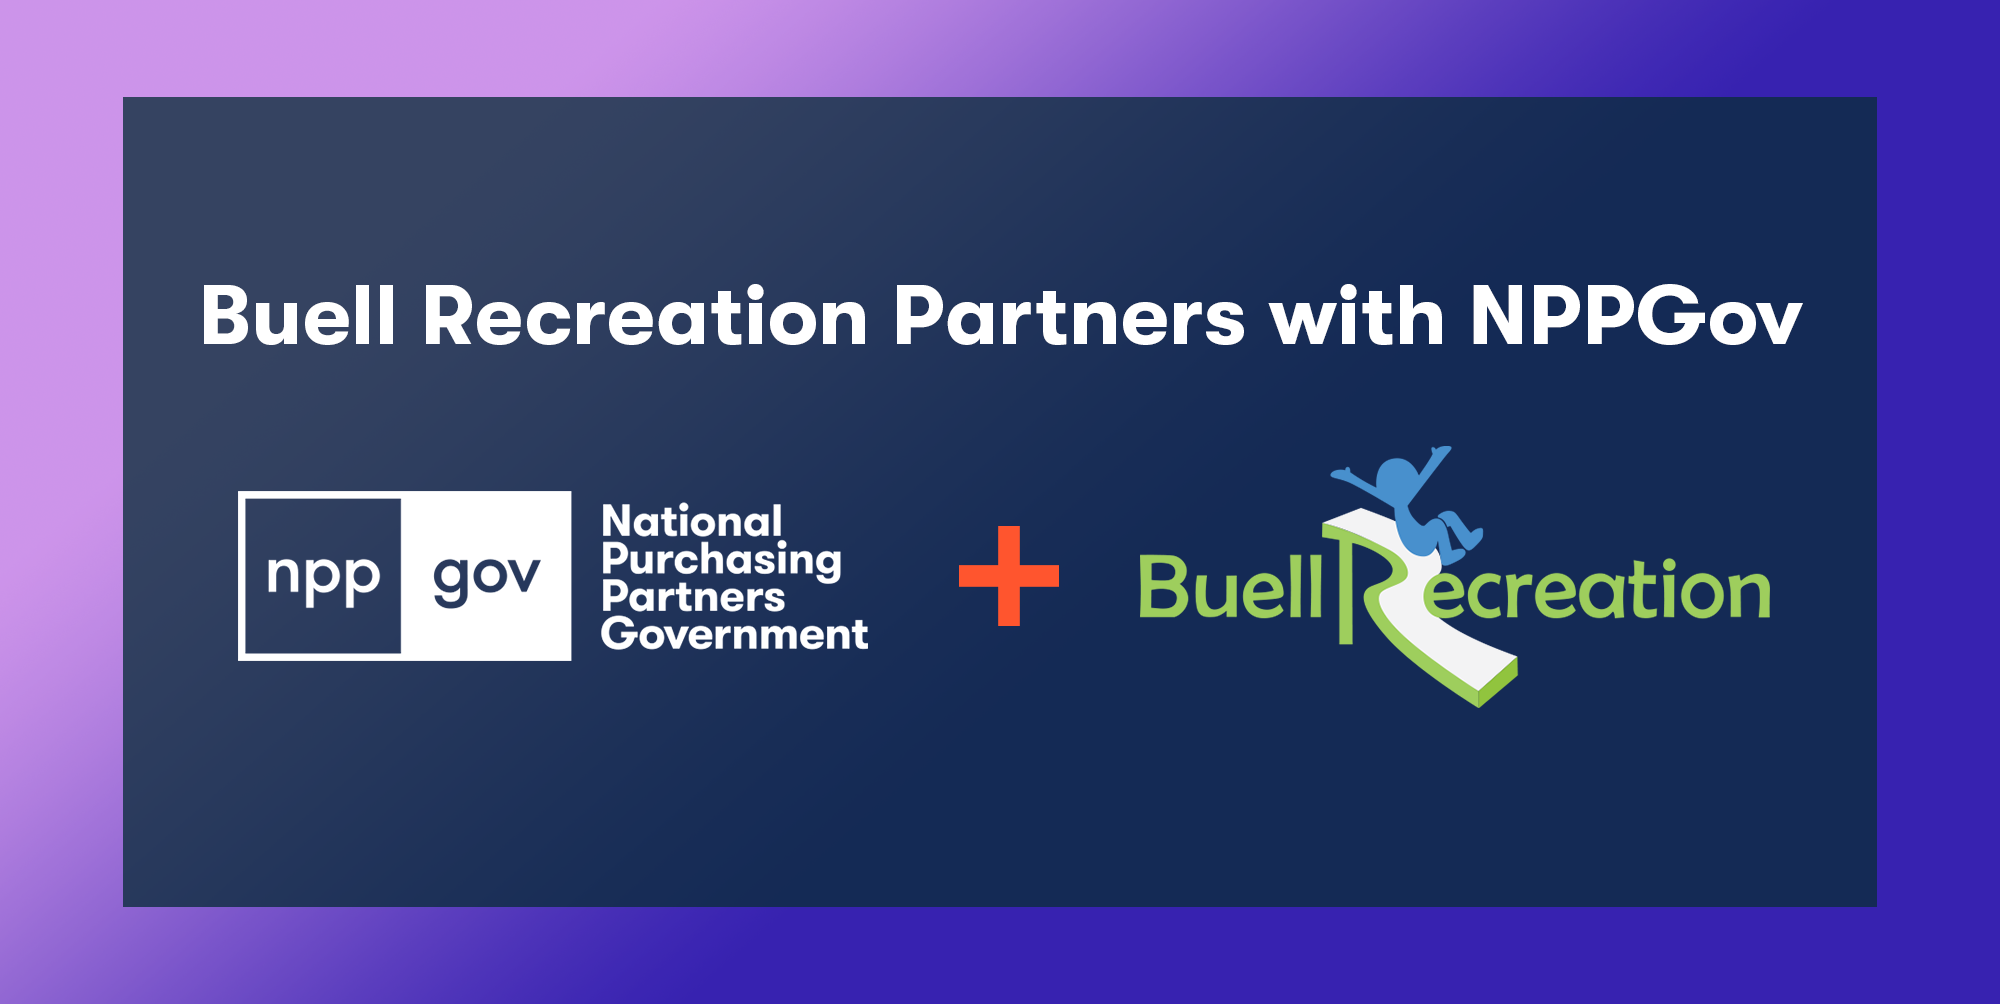 Buell Recreation, LLC Partners with NPPGov